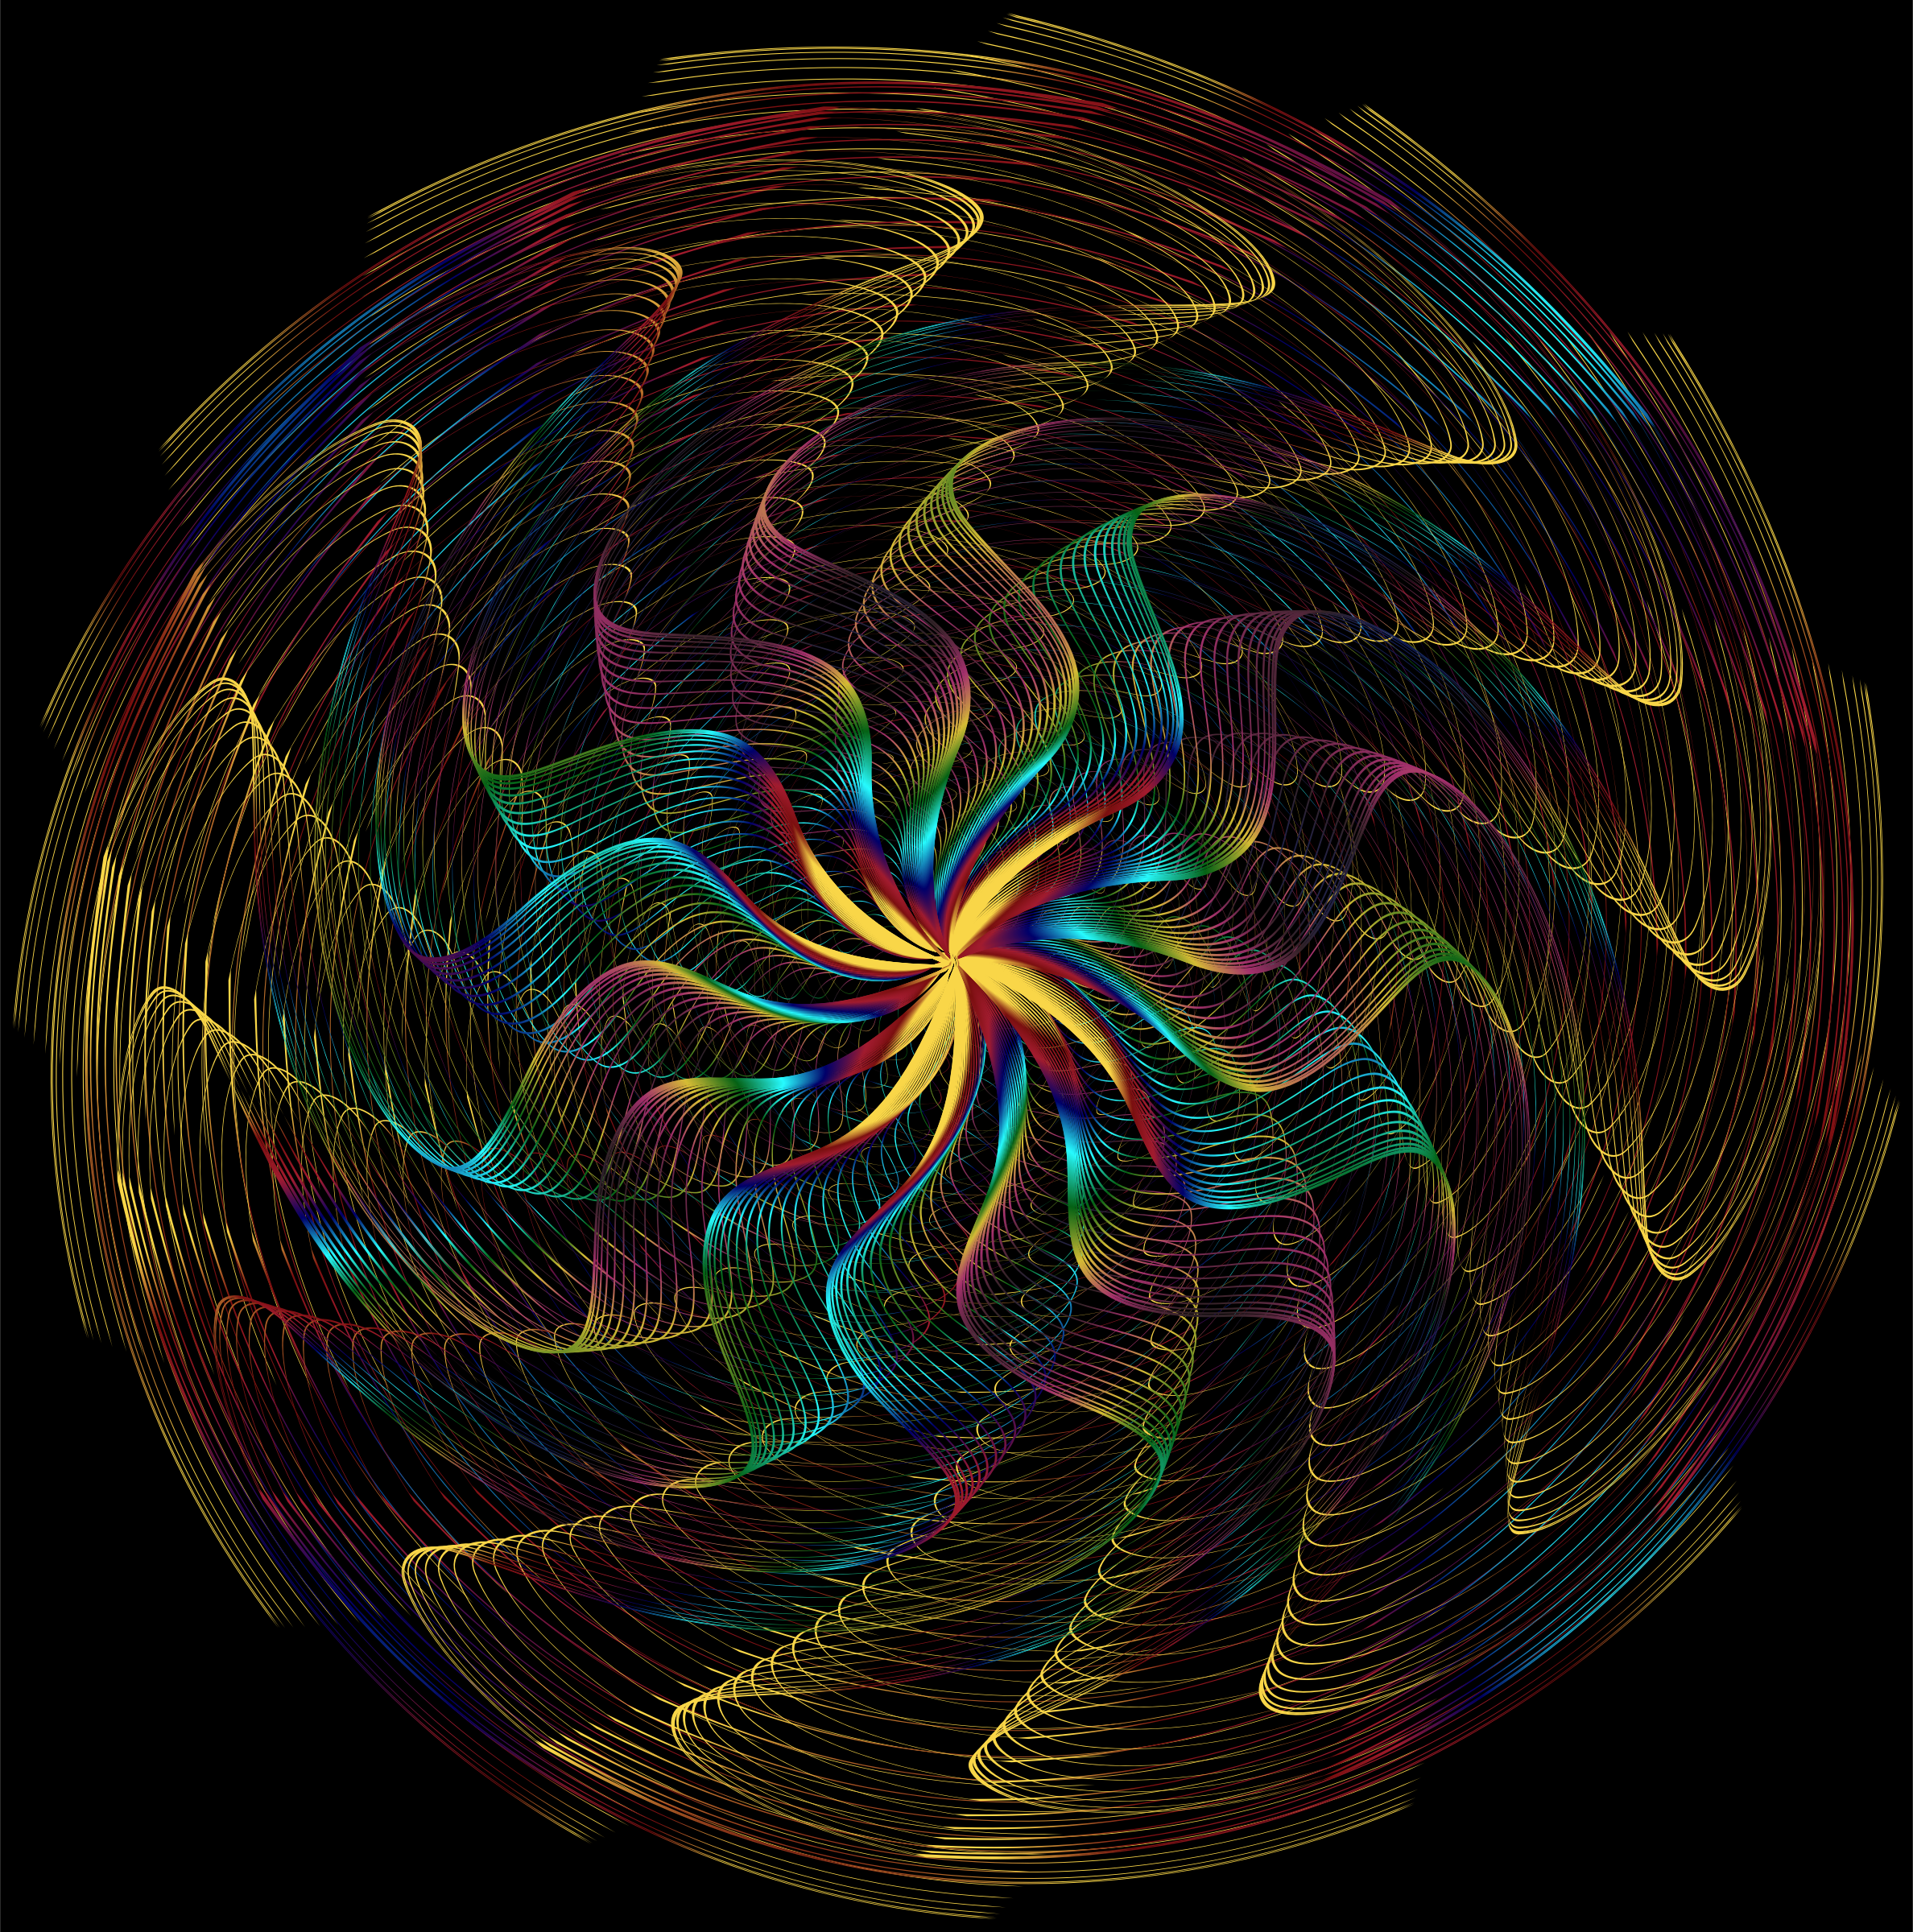 Colorful Wavy Vortex Line Art 8 by GDJ